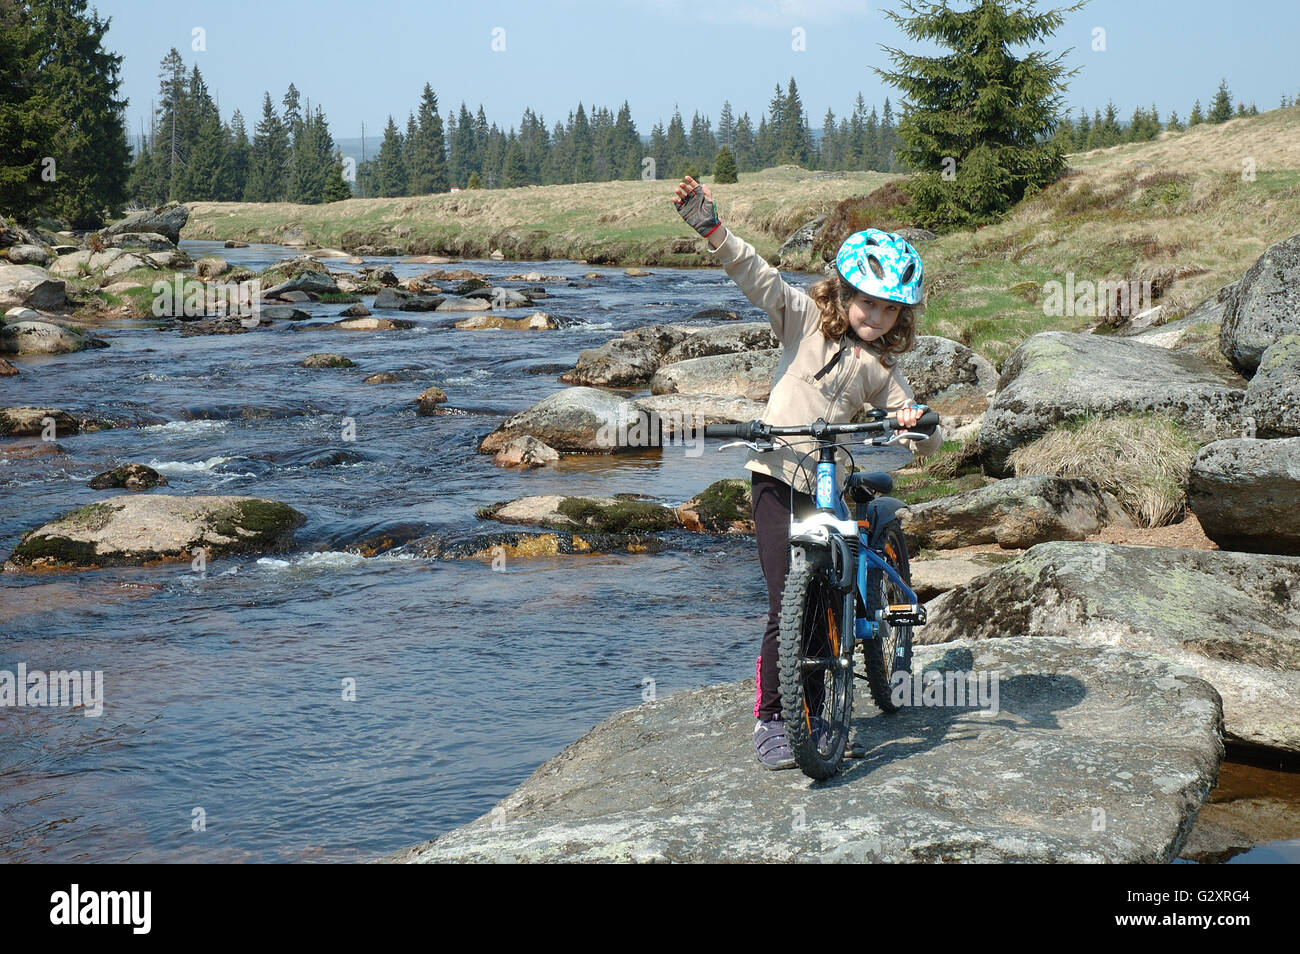 JAKUSZYCE, POLAND - APRIL 30: Unidentified little girl with bicycle on river bank in izerskie mountains in Poland - Stock Image